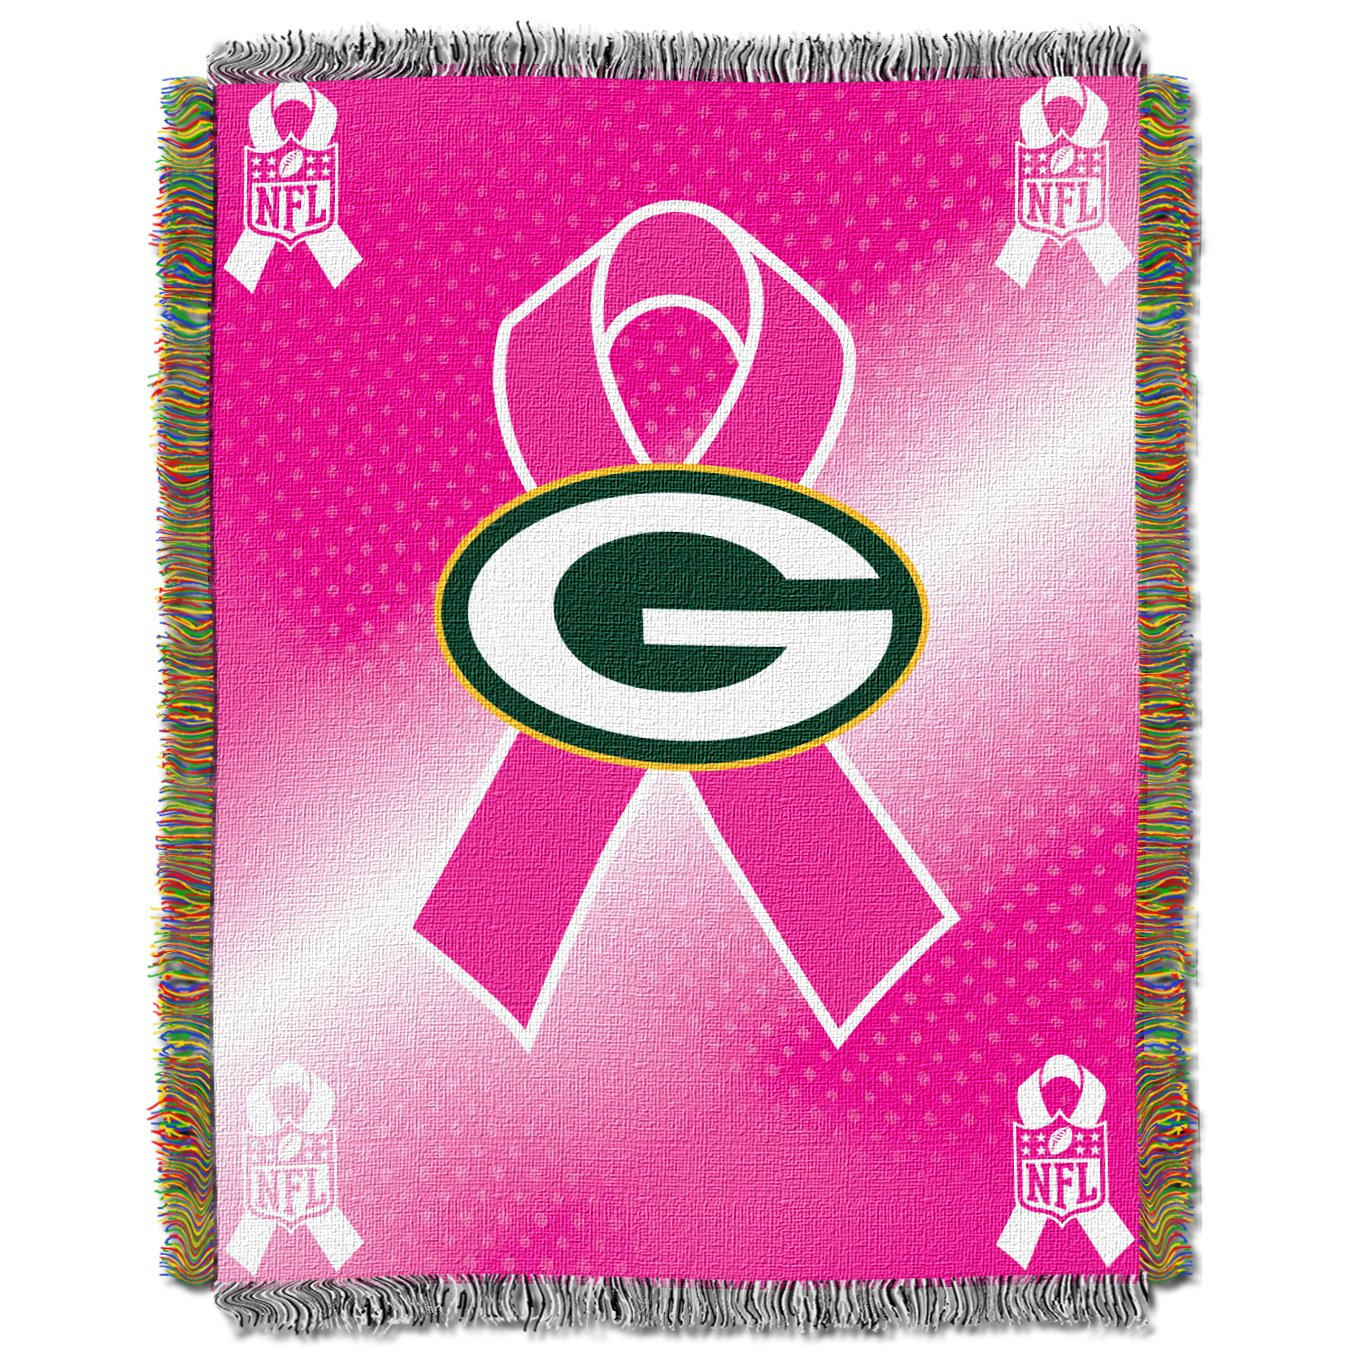 NFL Green Bay Packers Breast Cancer Awareness Woven Tapestry Throw 48 x 60